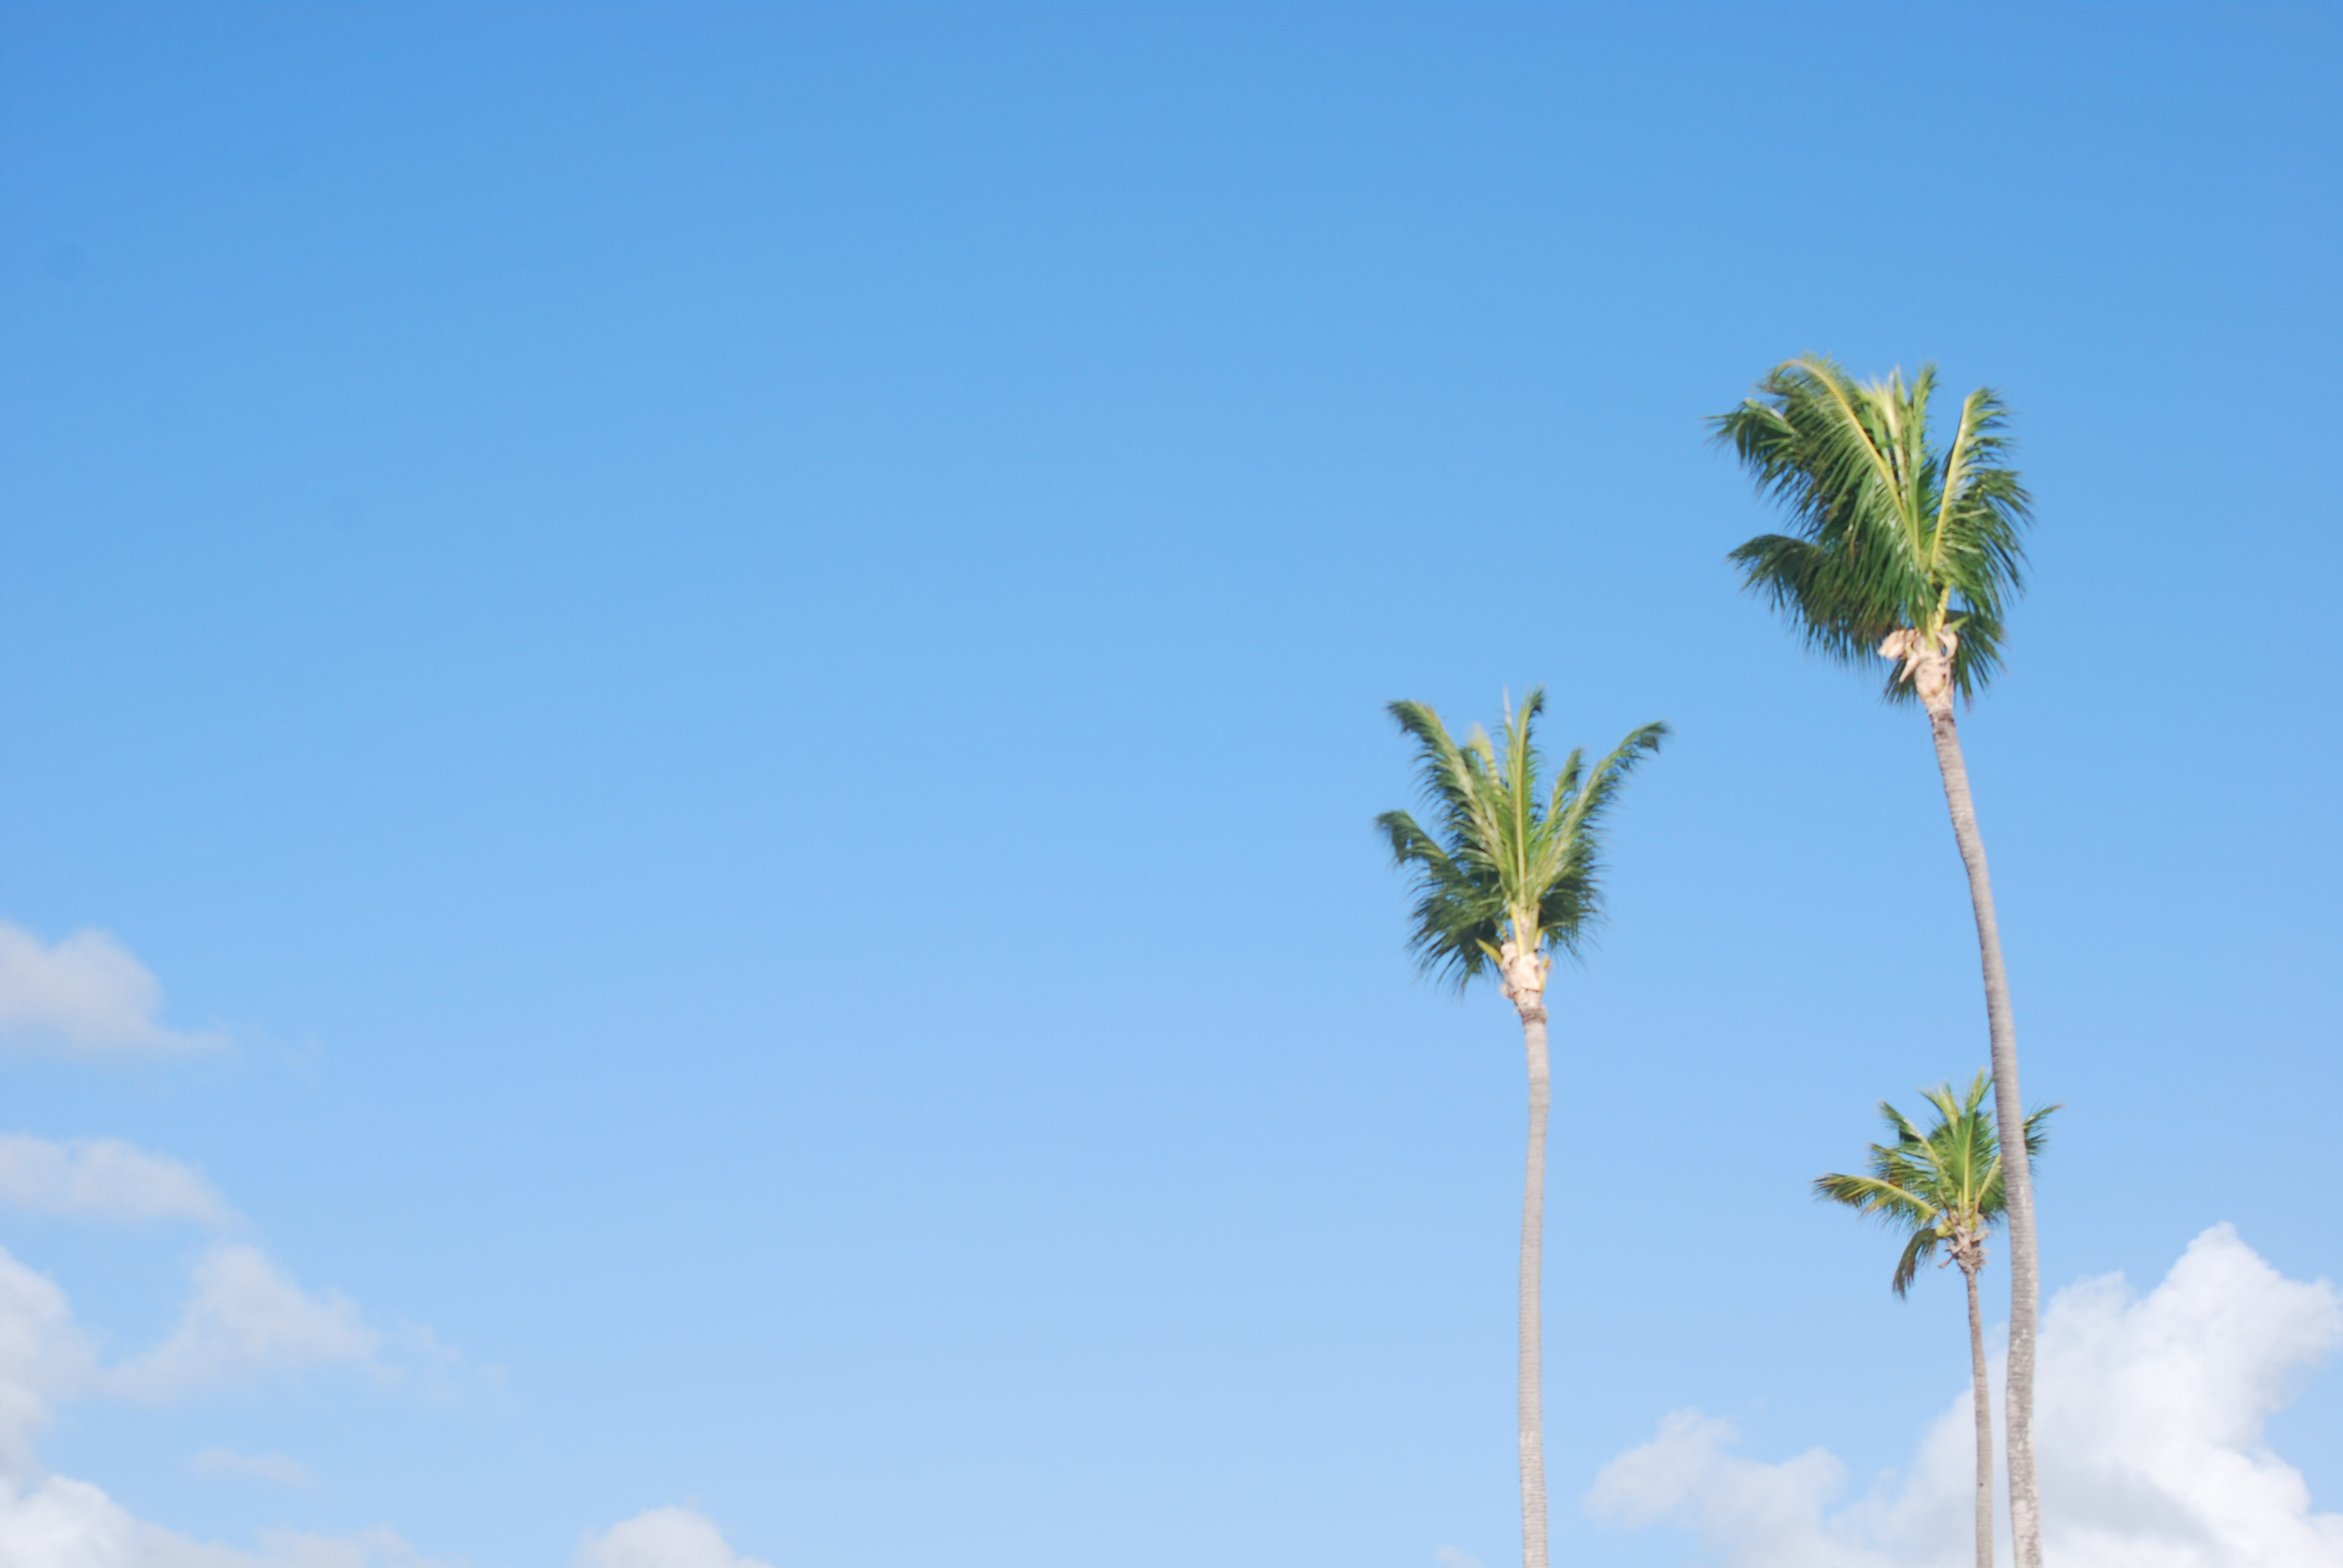 photo of coconut tree during daytime